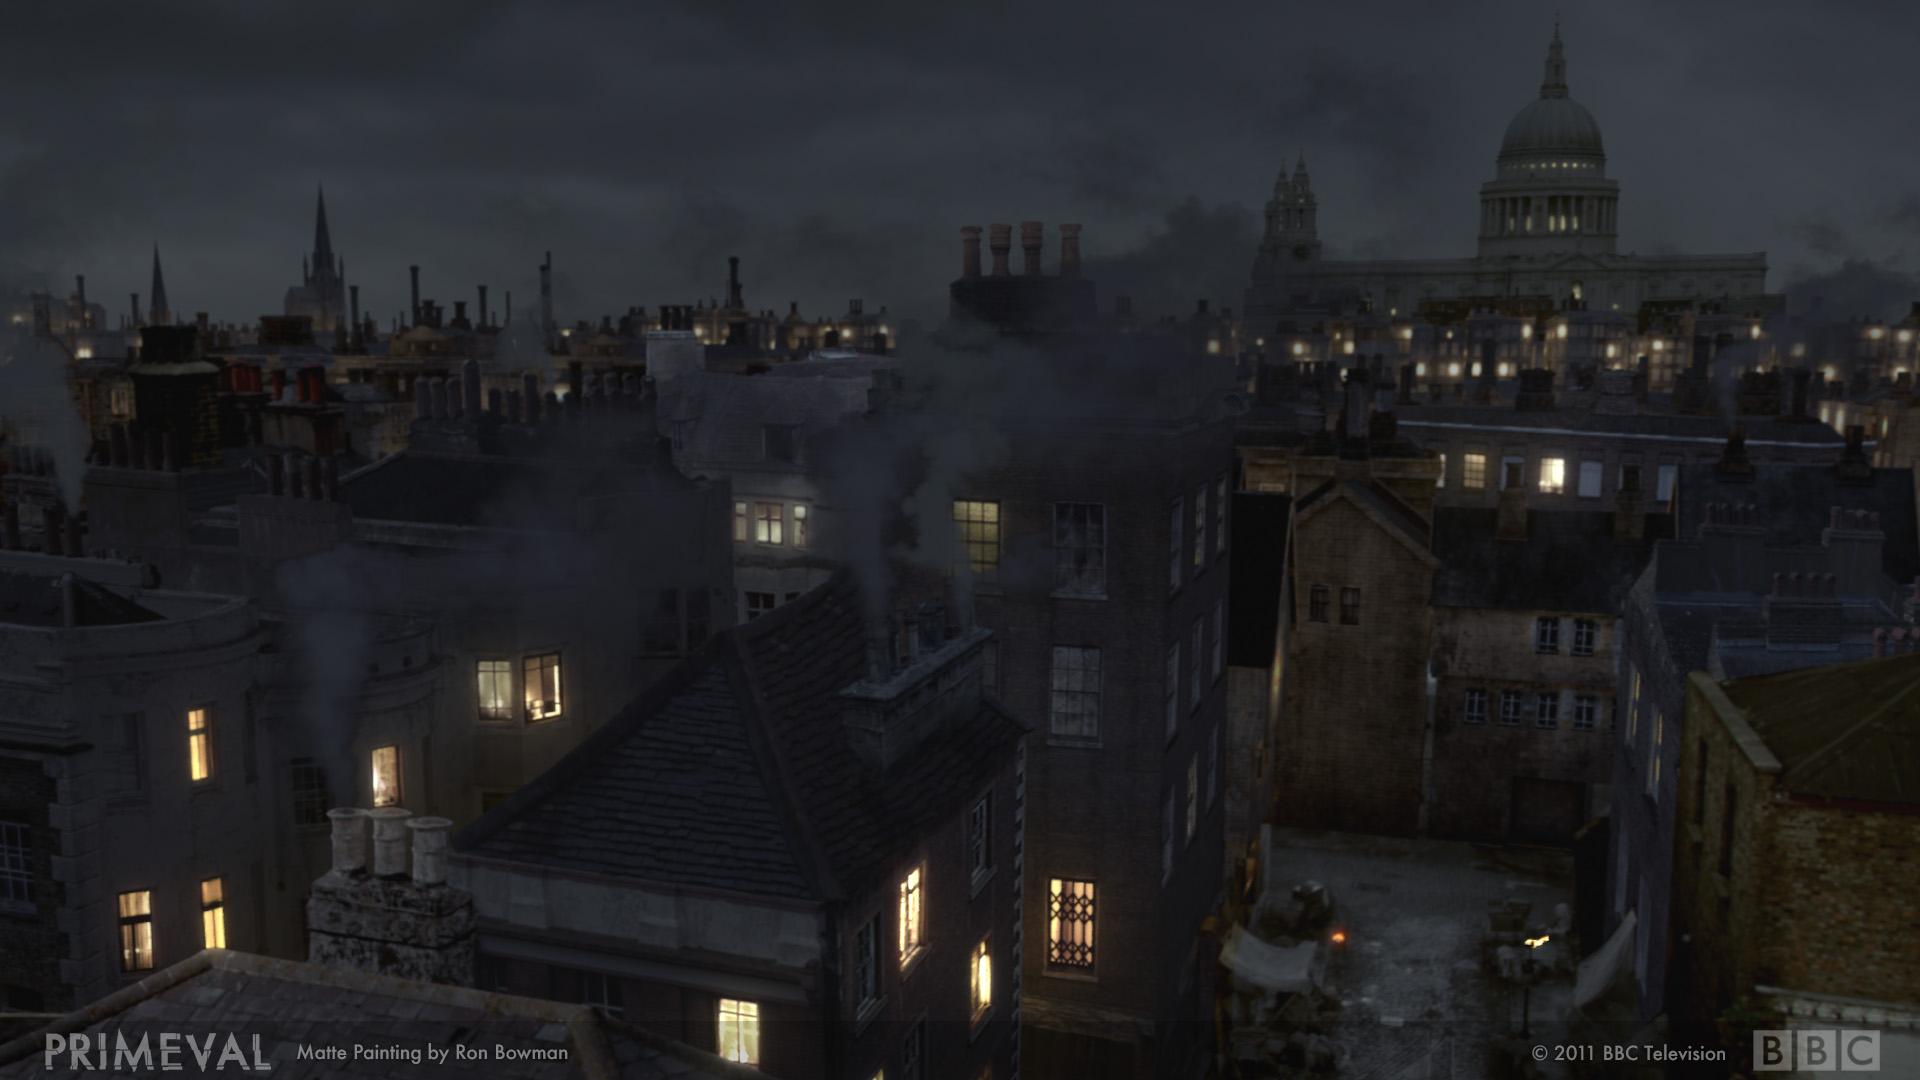 primeval_london_night_01.jpg